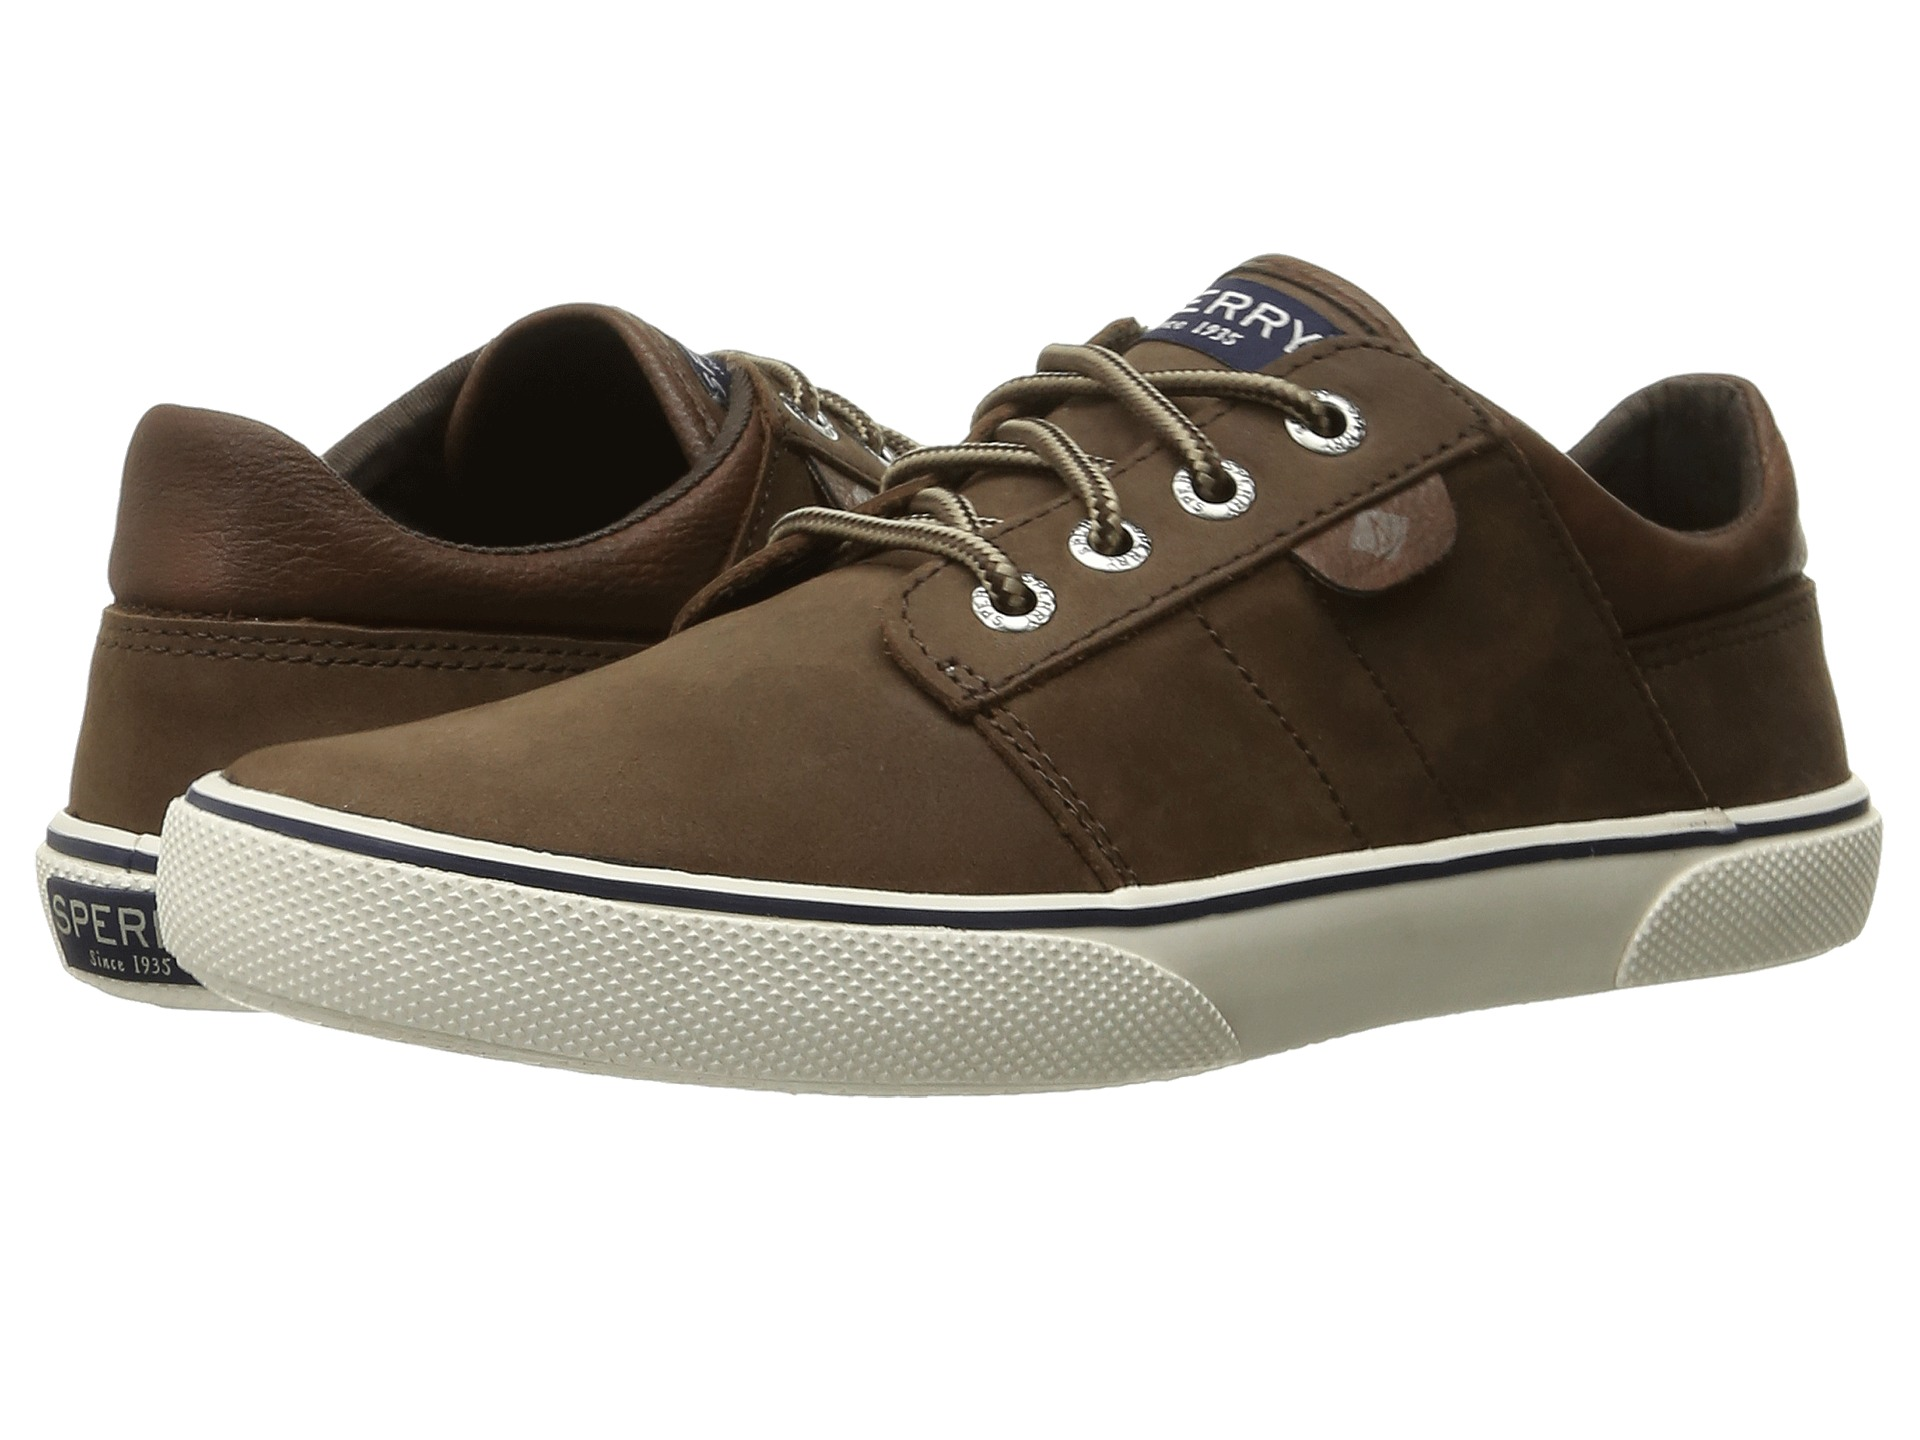 ★ Sperry Kids 'Authentic Original' Boat Shoe (Walker Toddler) @ On Sale Toddler Boys Shoes Sizes 7 5 12, Find great deals on the latest styles Compare prices & save money [SPERRY KIDS 'AUTHENTIC ORIGINAL' BOAT SHOE (WALKER TODDLER)] Shop With Guaranteed Low Prices. Huge Sale .